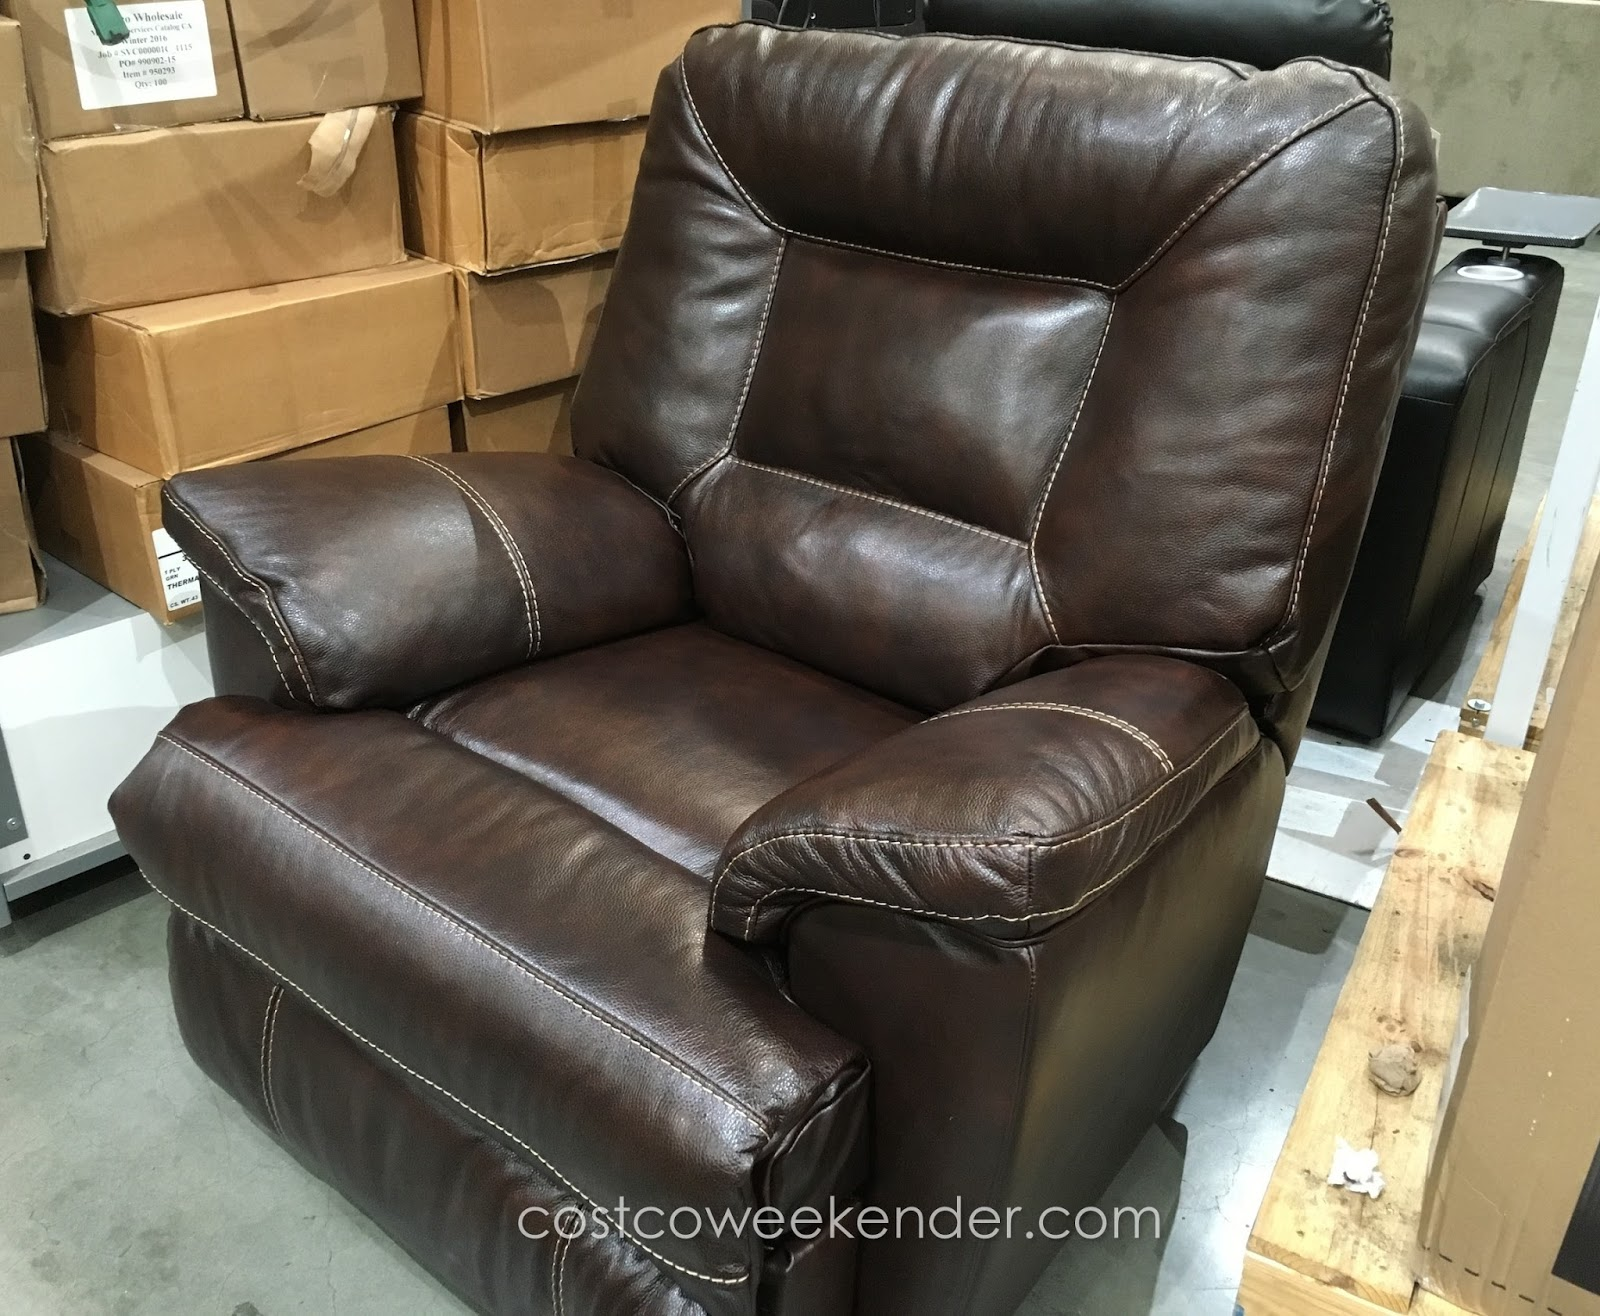 Costco Recliner Chair Berkline Leather Rocker Recliner Chair Costco Weekender